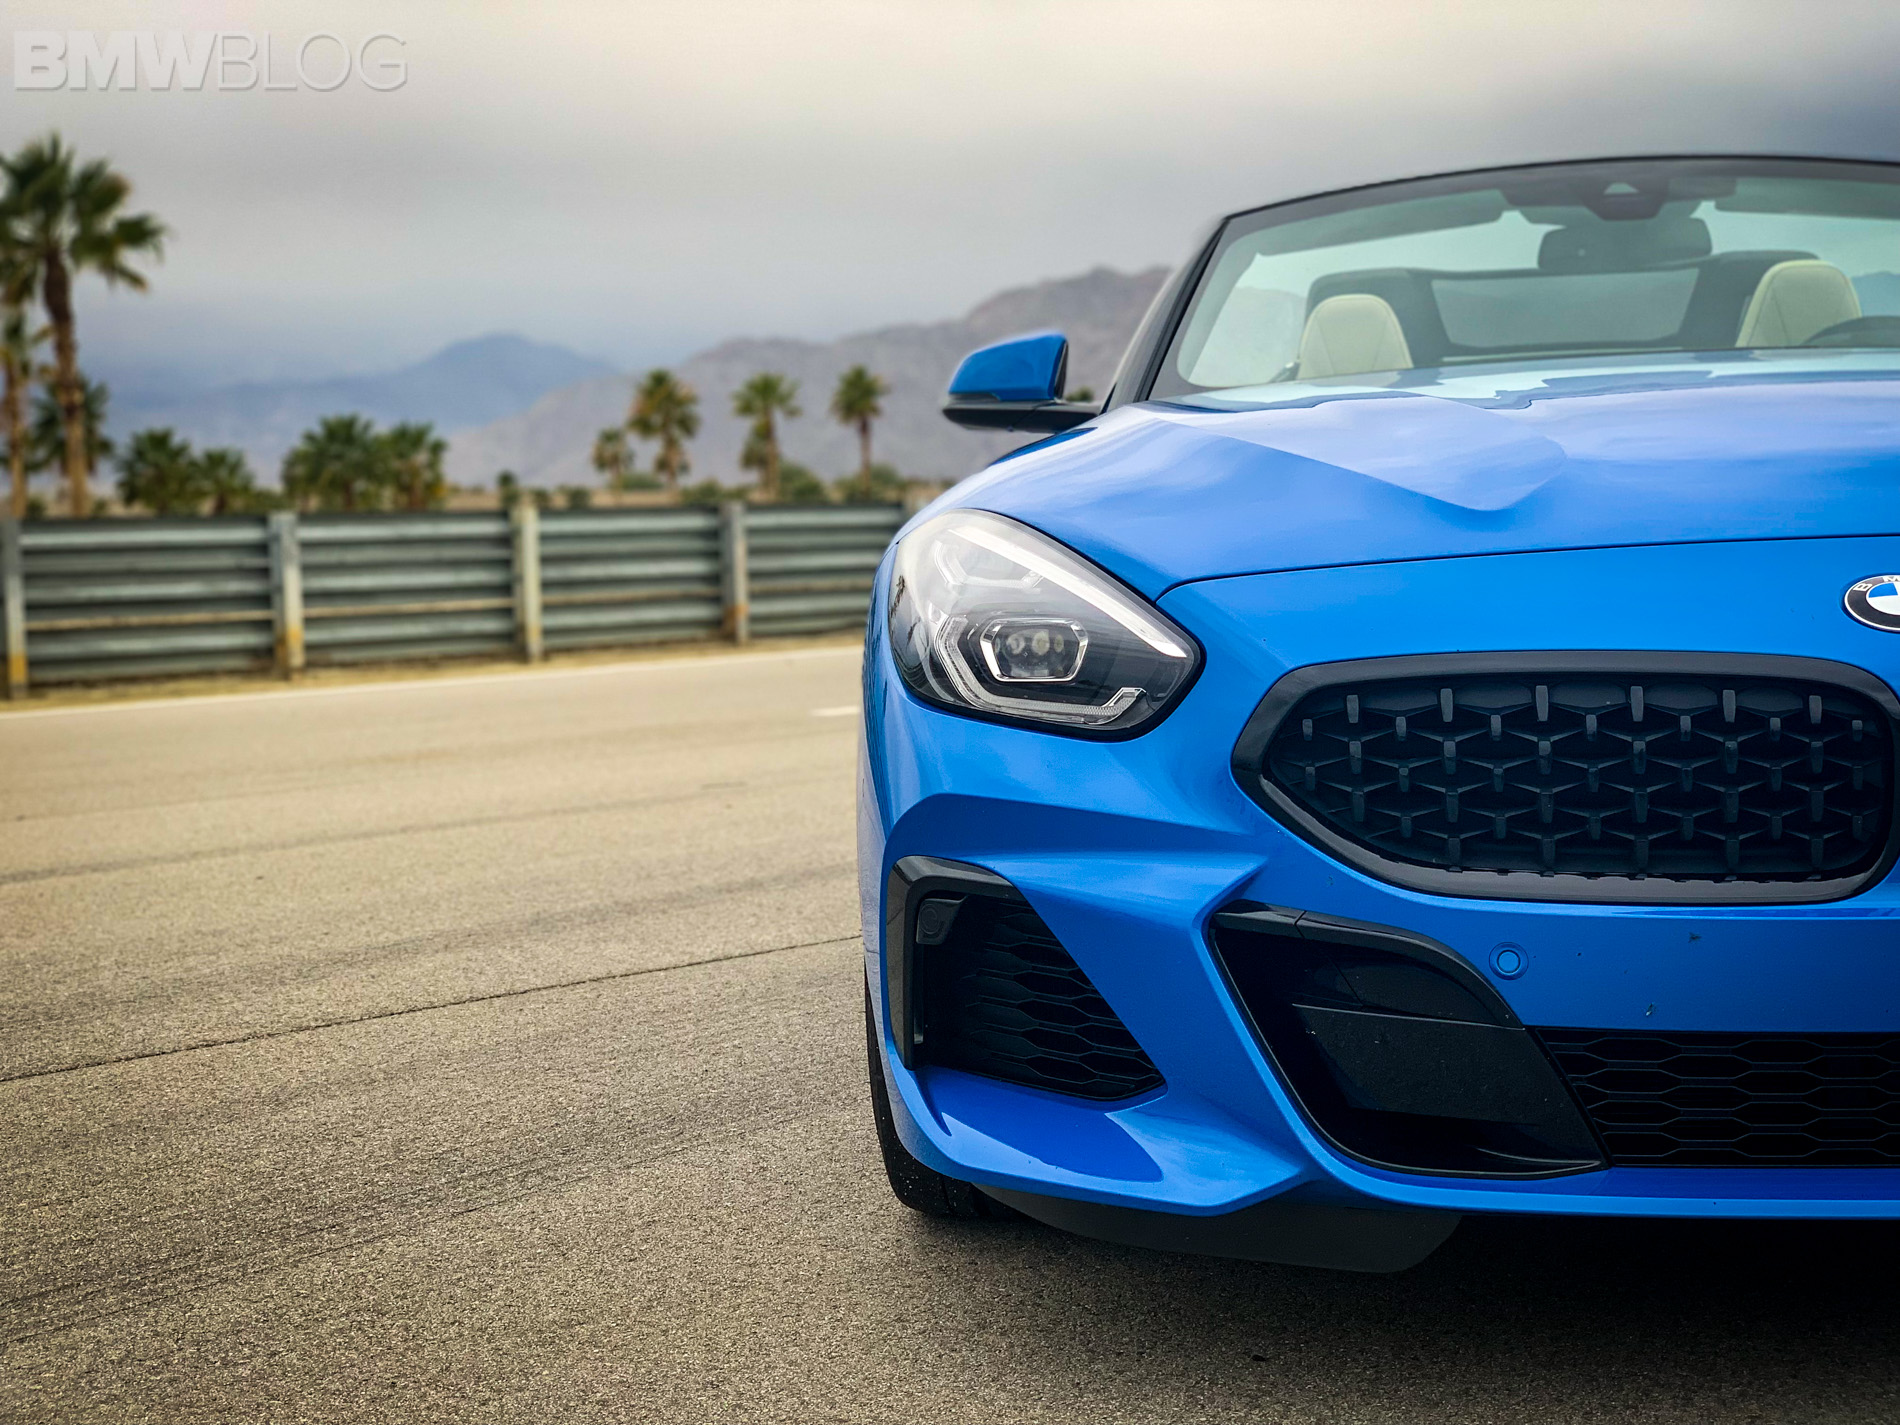 2019 Bmw Z4 Looks Awesome In Misano Blue